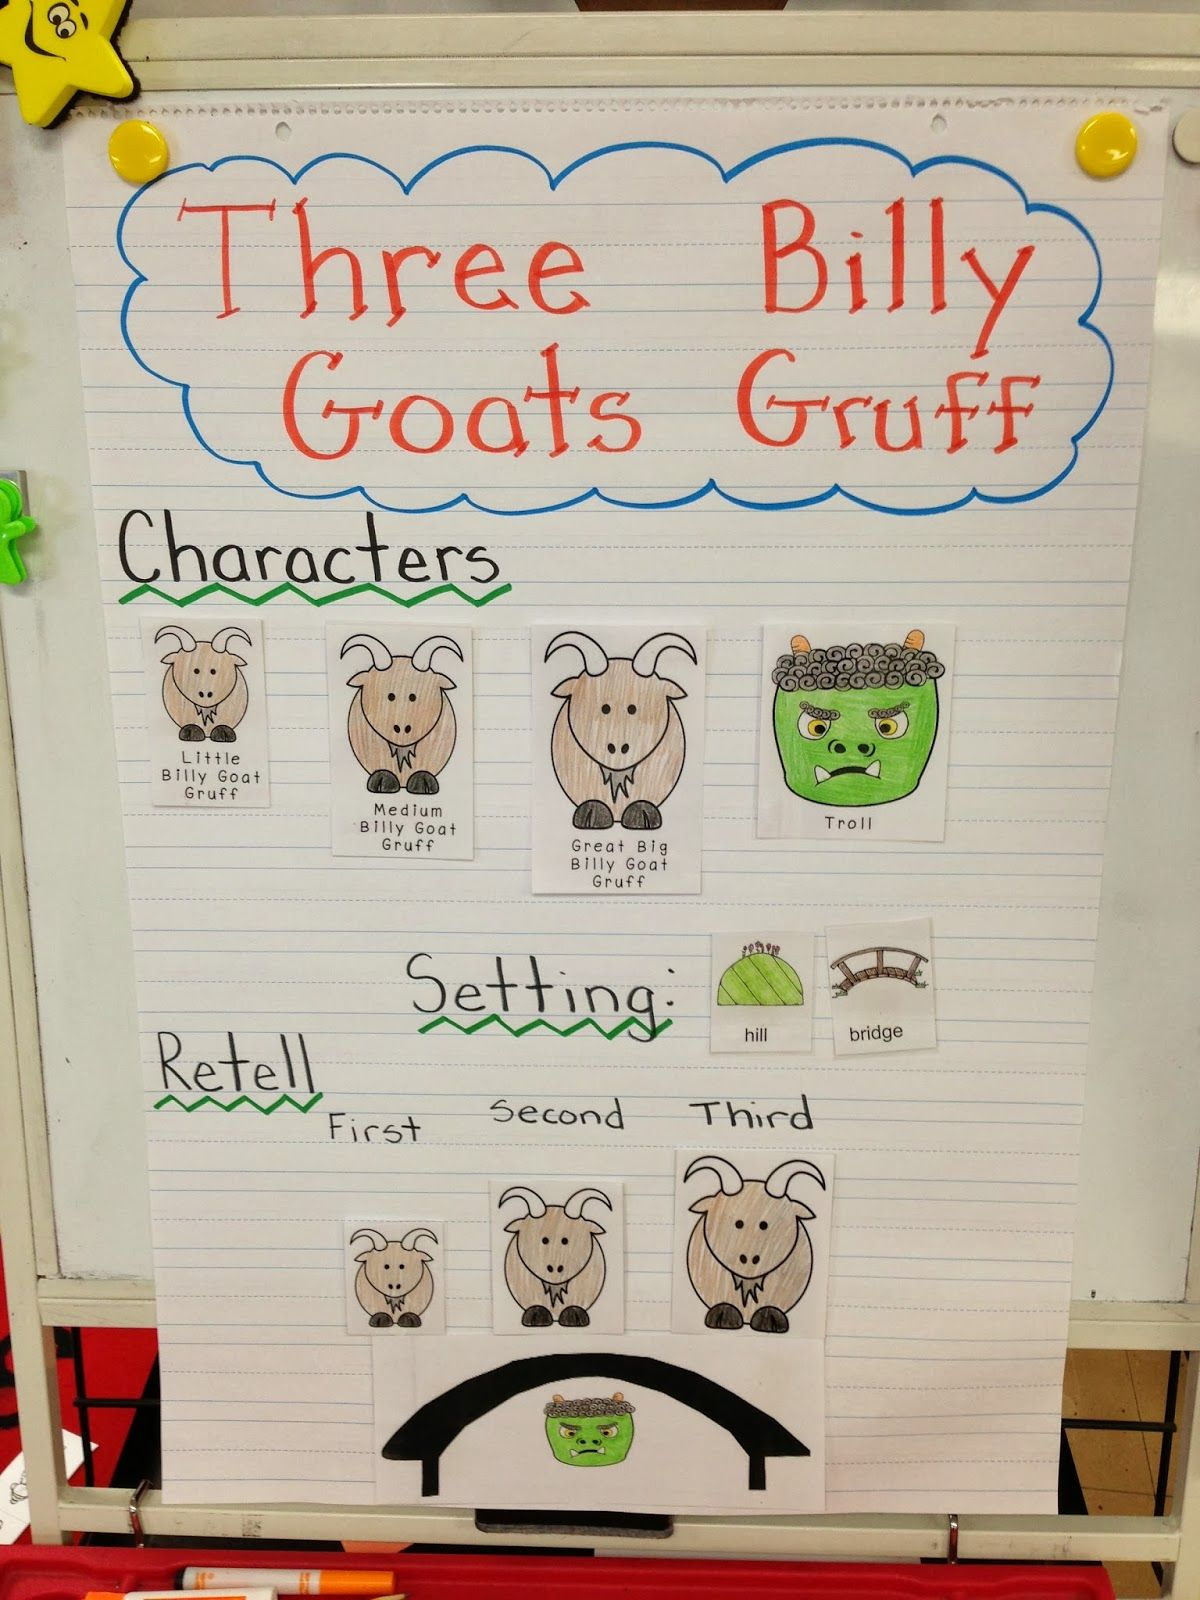 worksheet 3 Billy Goats Gruff Sequencing Worksheet three billy goats gruff activities and lots of freebies to go with fun educational the core text